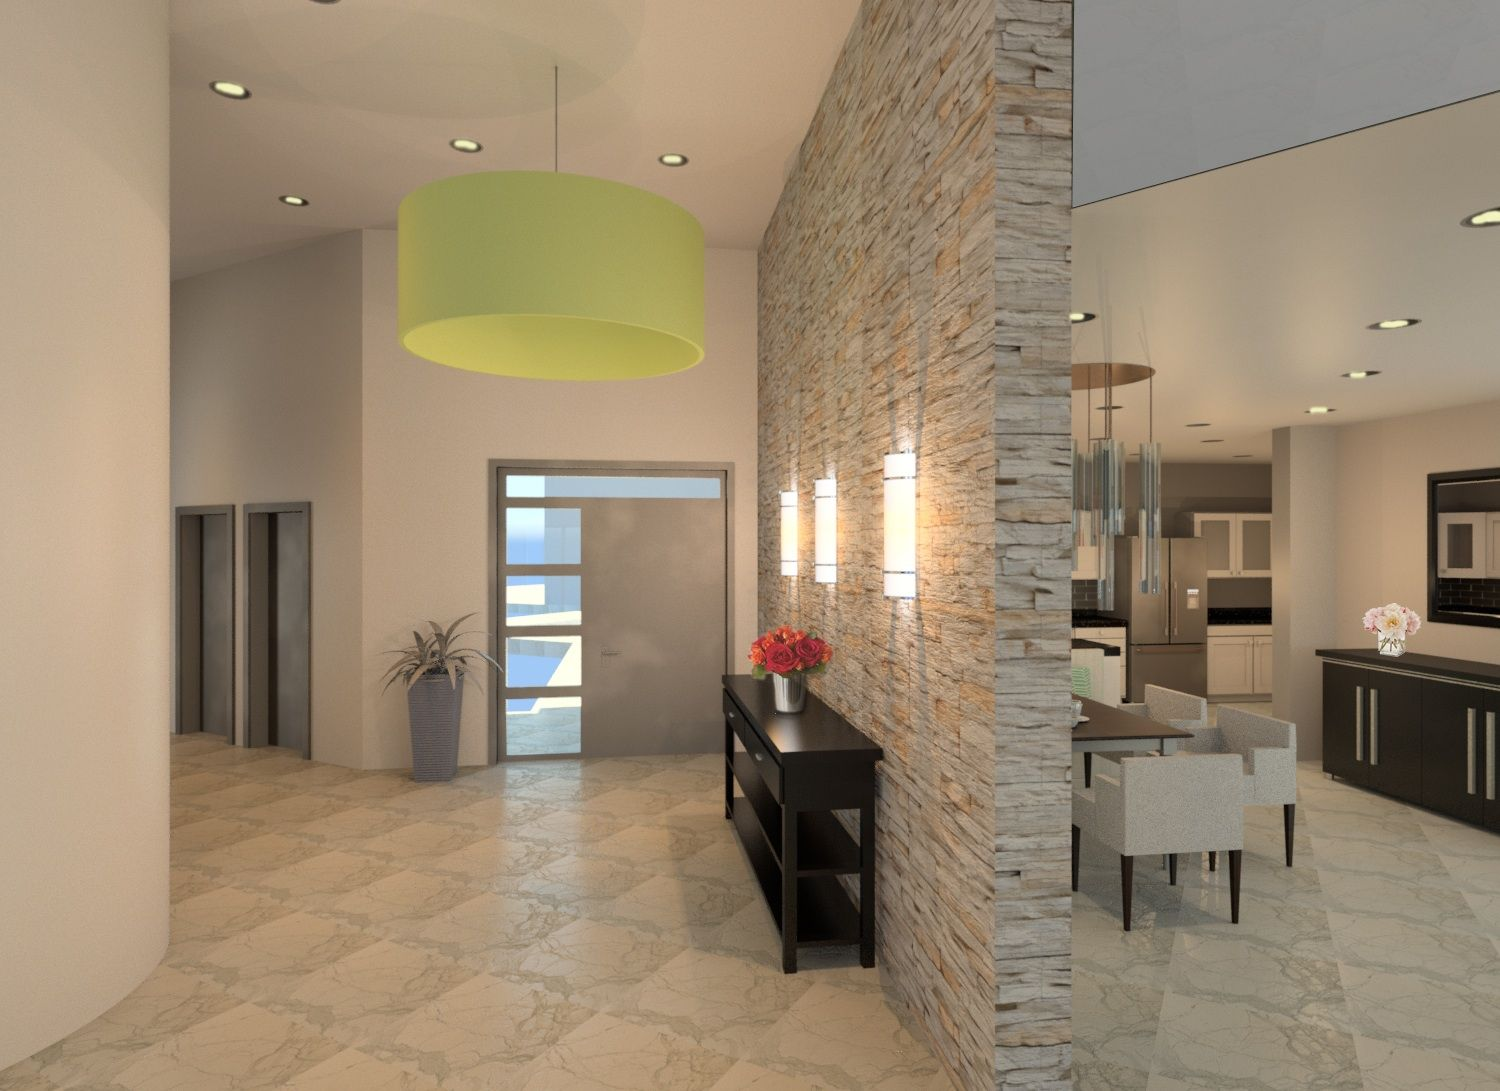 Front Entrance Hallway Rendering Designed By Emily Clark